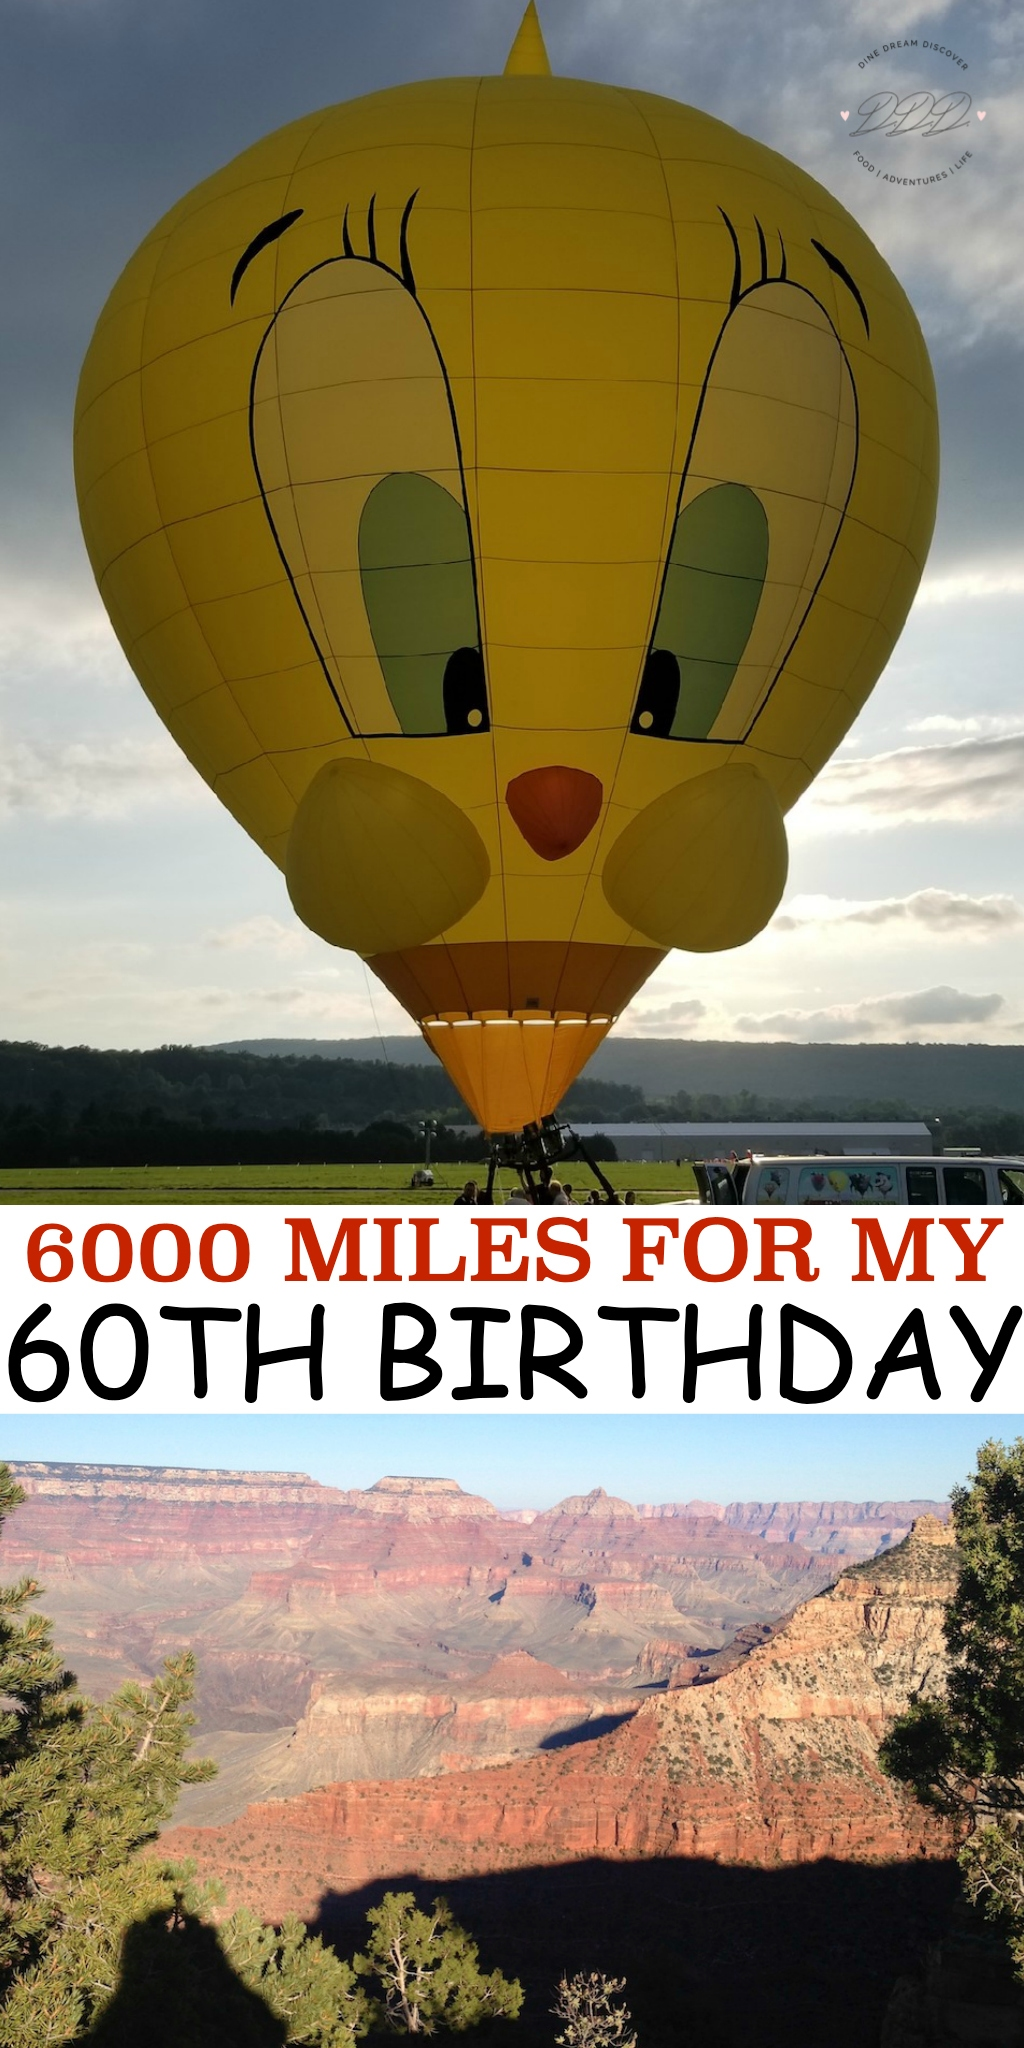 You only turn 60 once so why not celebrate your milestone birthday the way you want! We are headed out on a 6000 mile trip for my 60th birthday!